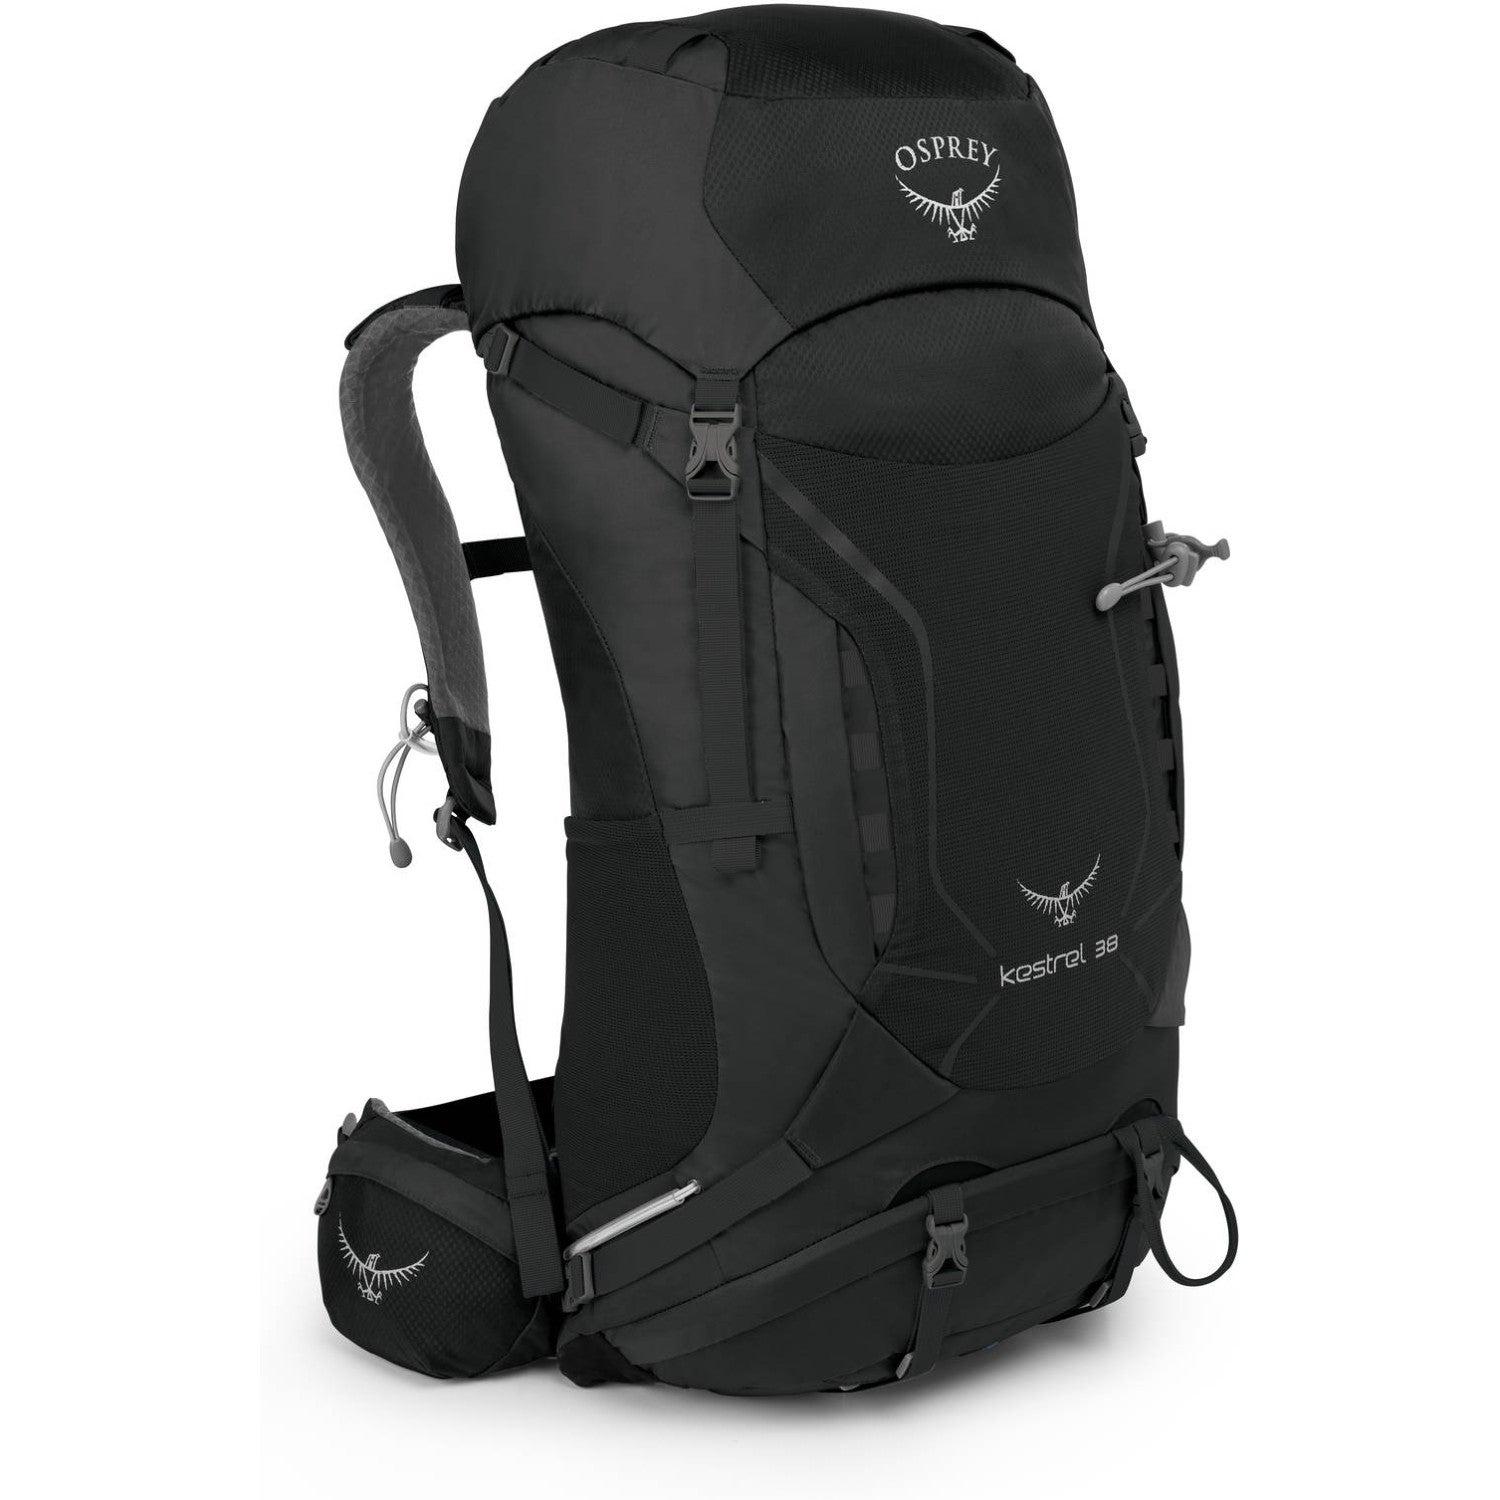 Osprey Kestrel 38 Mens Hiking Backpack